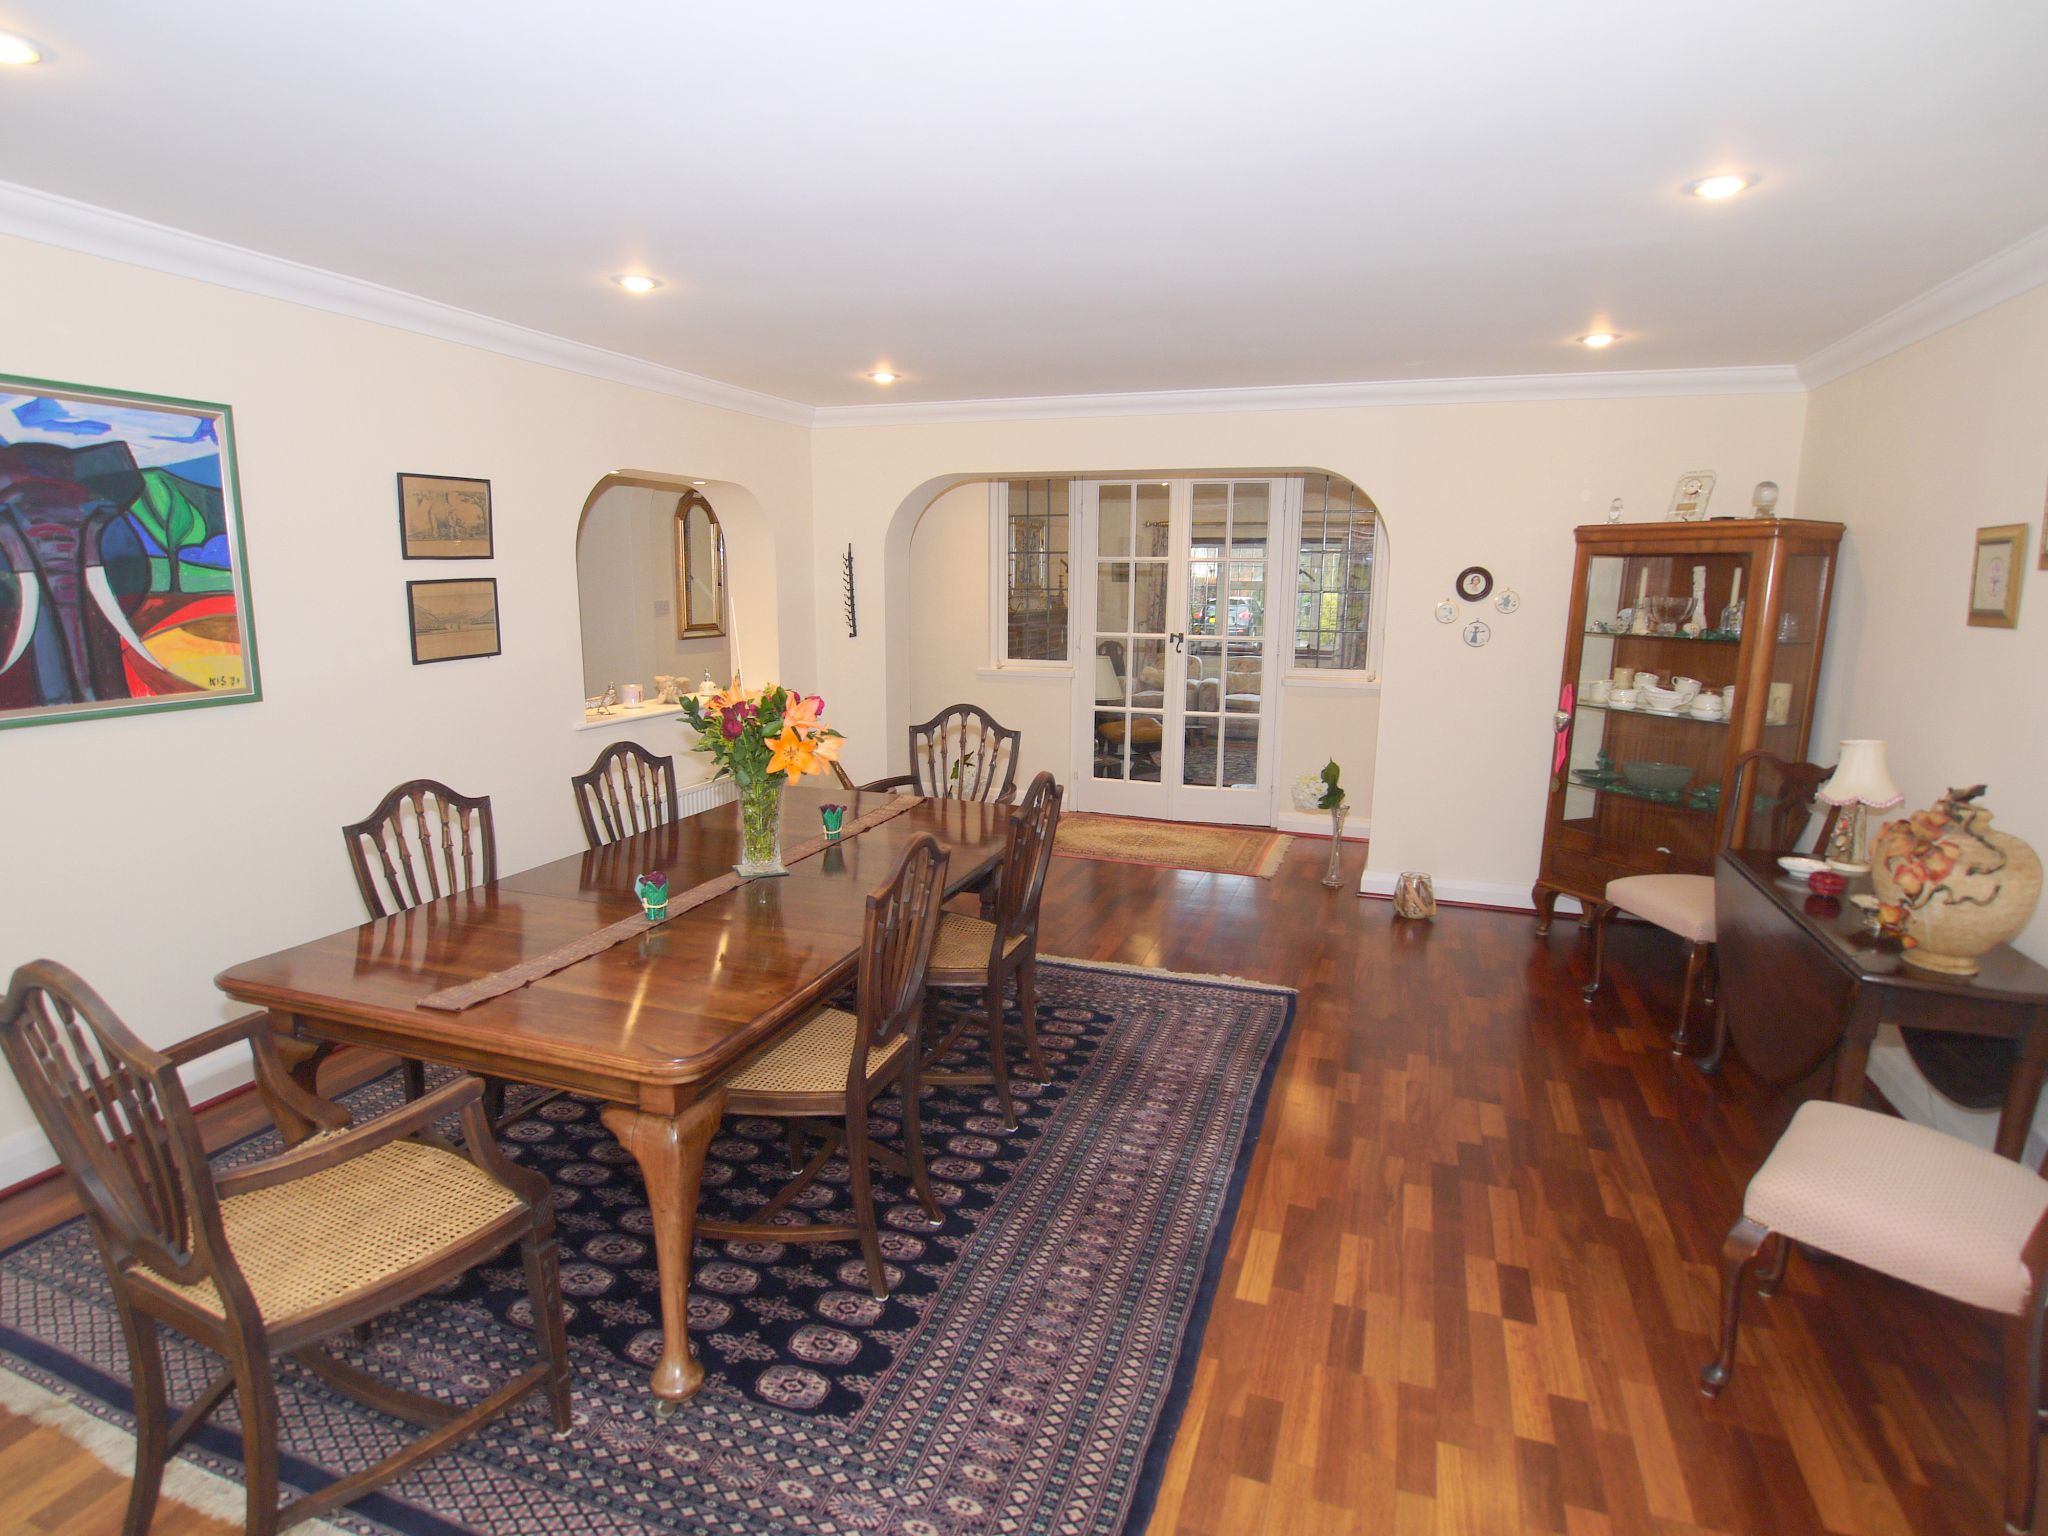 6 bedroom detached house For Sale in Sevenoaks - Photograph 5